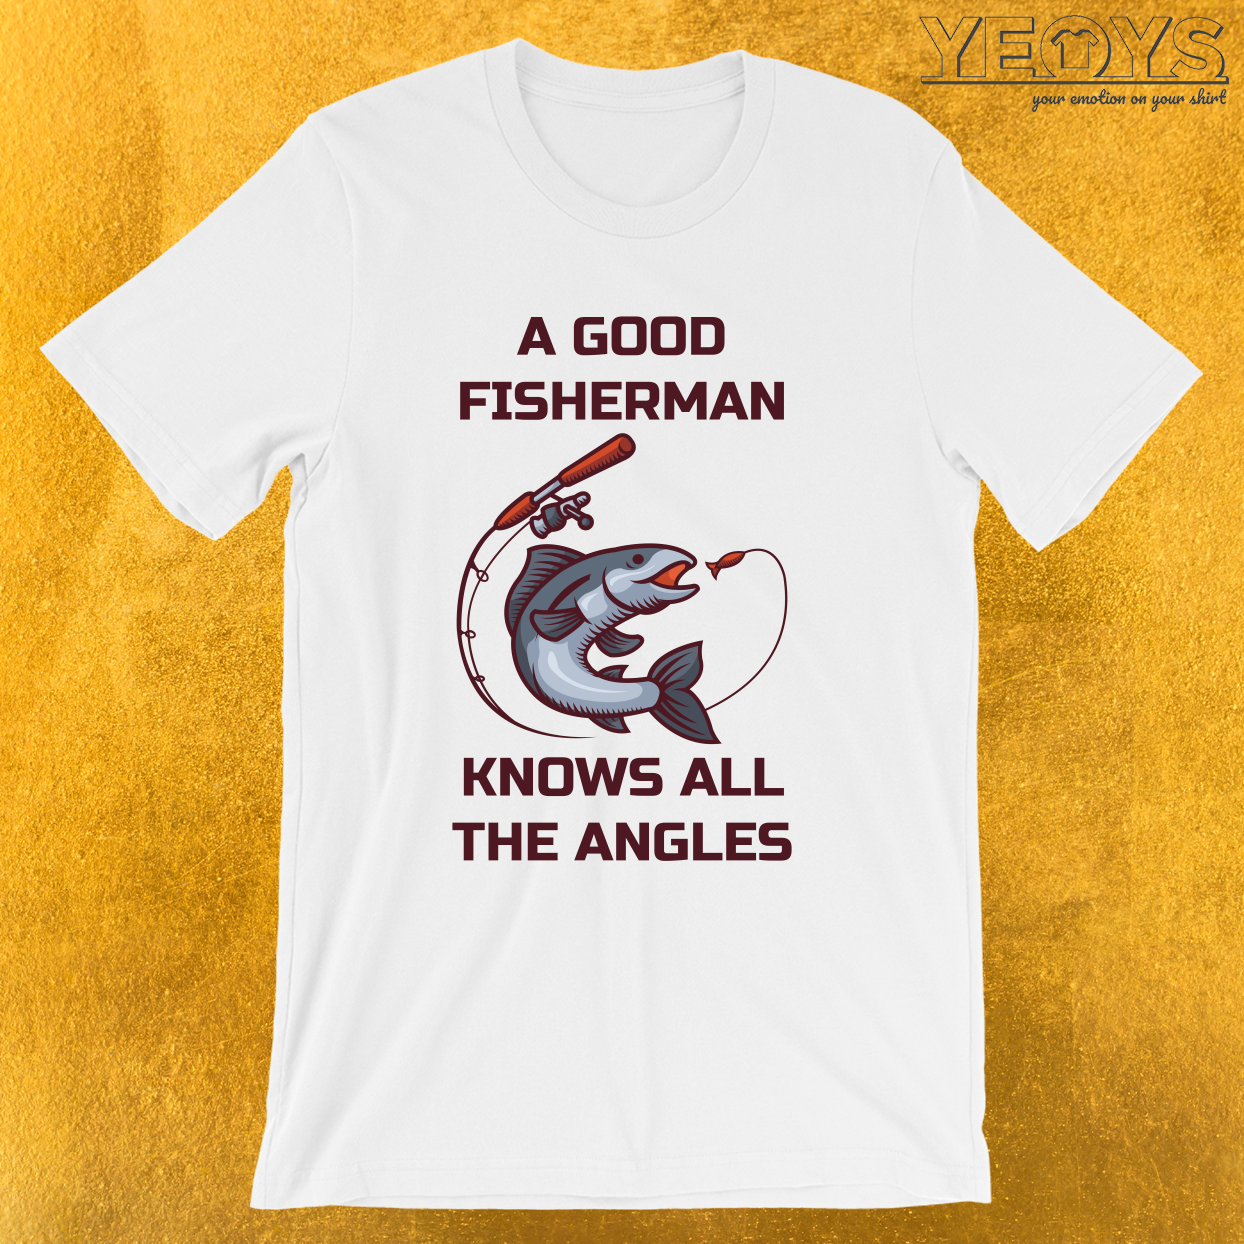 A Good Fisherman Knows All The Angles – Fishing Trip Tee